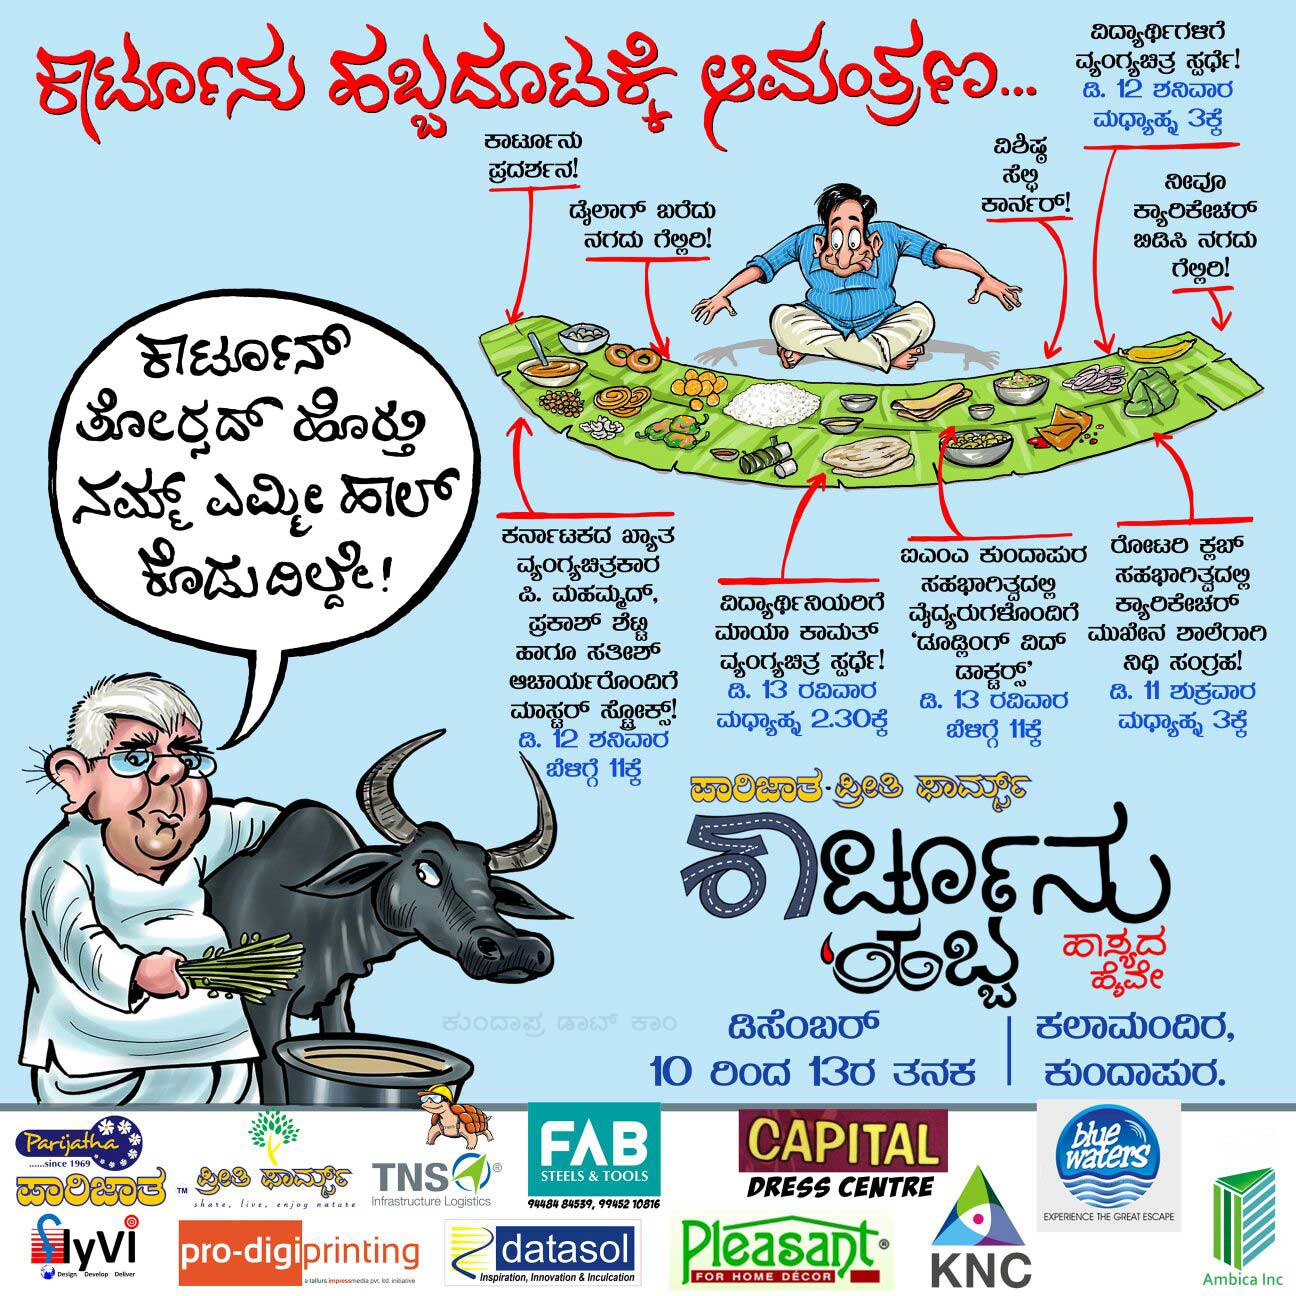 Cartoon Habba 2016 at Kundapura - Cartoonist Satish Acharya and team (2)